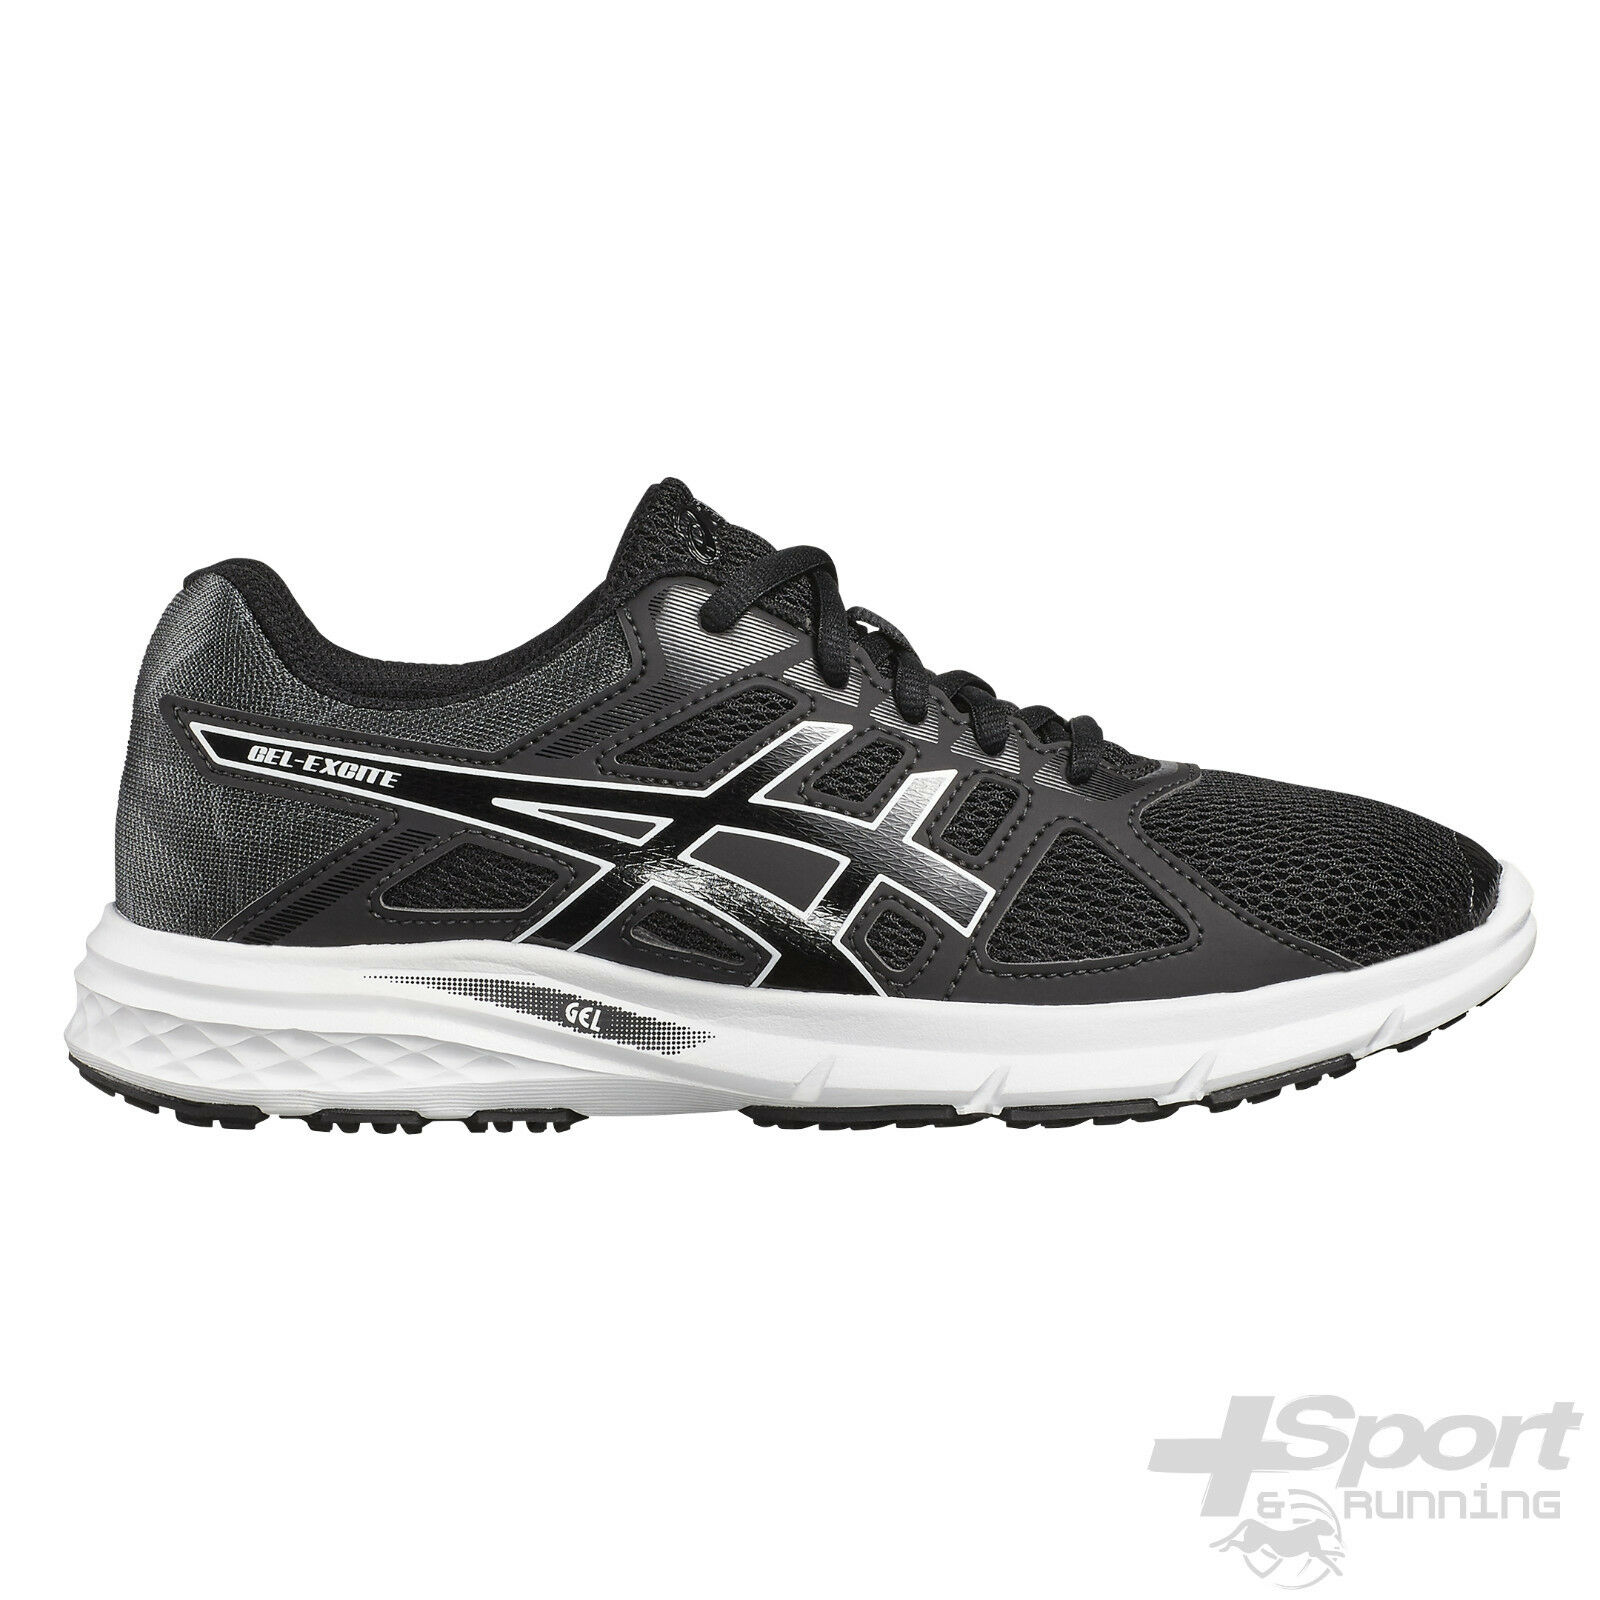 running shoe Asics Gel Excite 5 Woman T7F8N-9090 Great discount